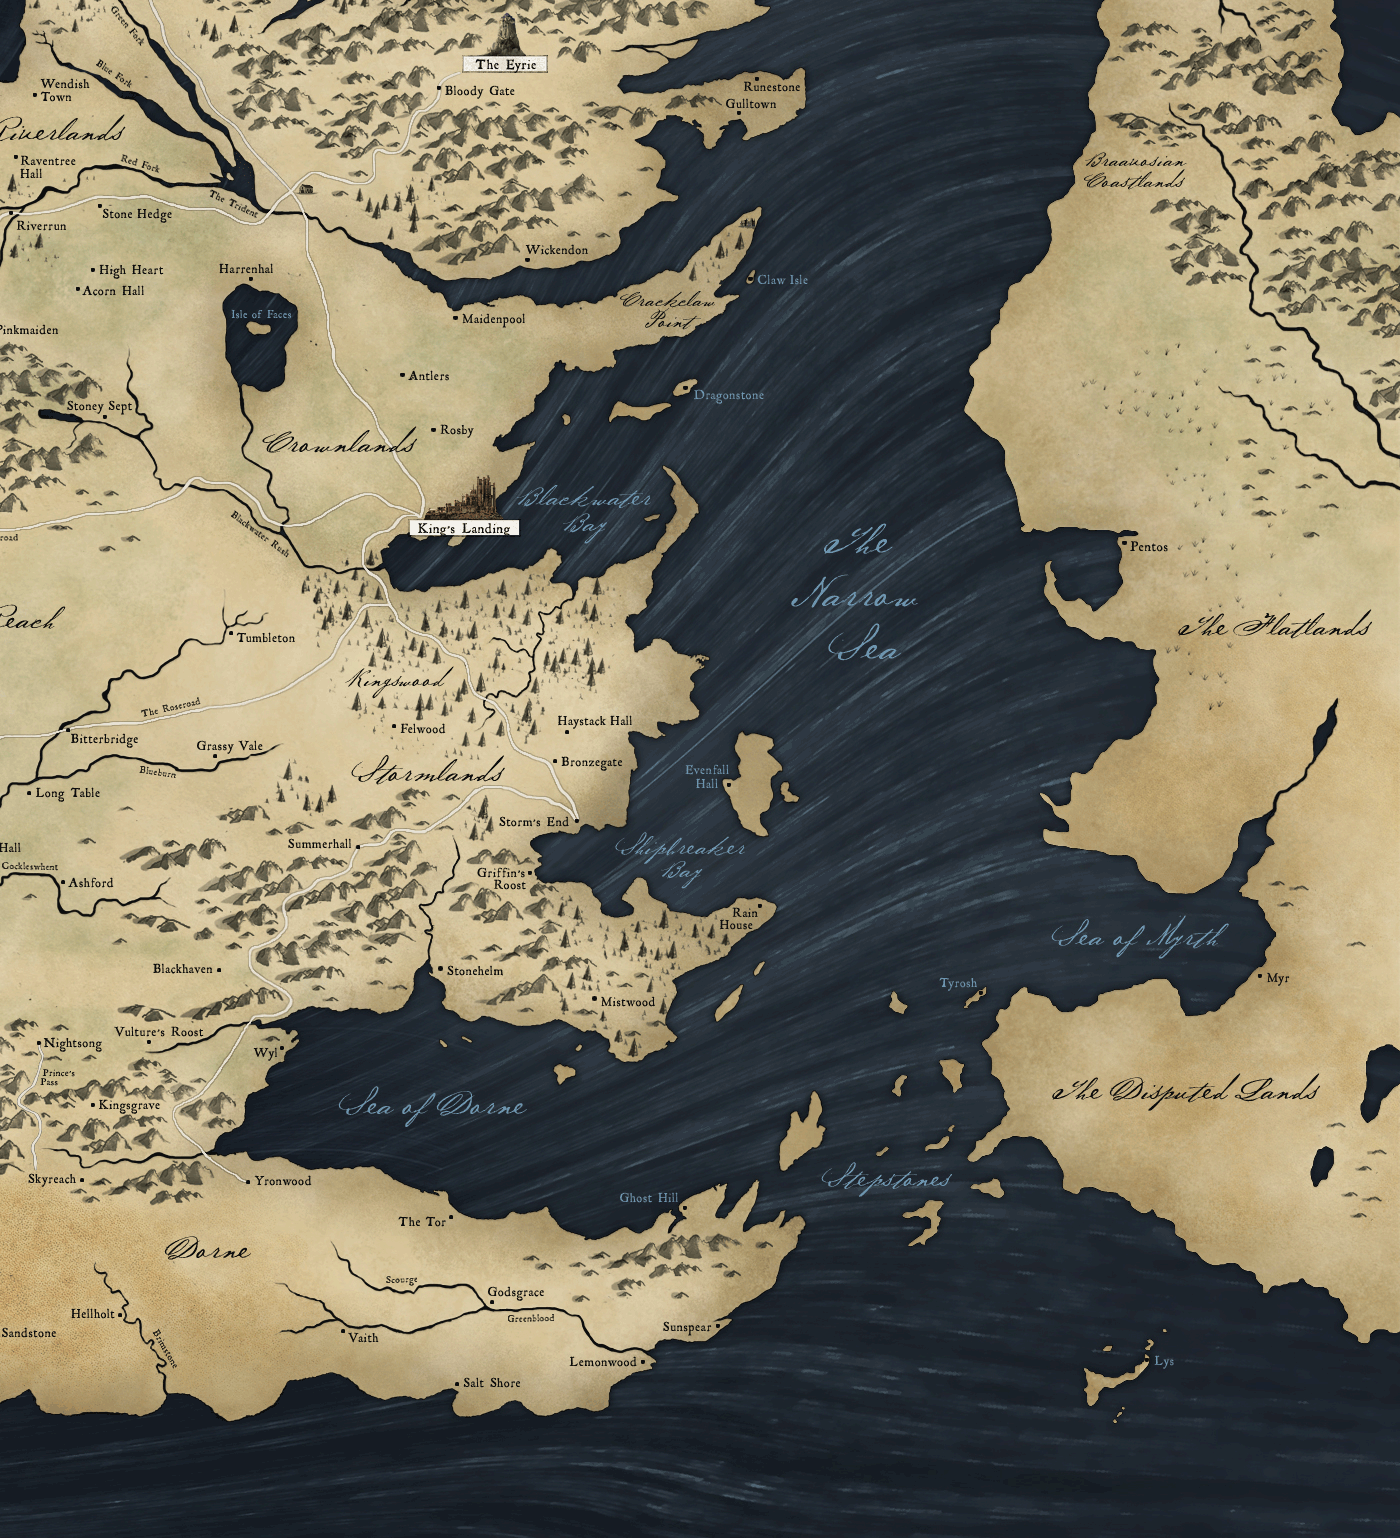 Hbo viewers guide game of thrones maps juego de tronos hbo viewers guide game of thrones maps gumiabroncs Images